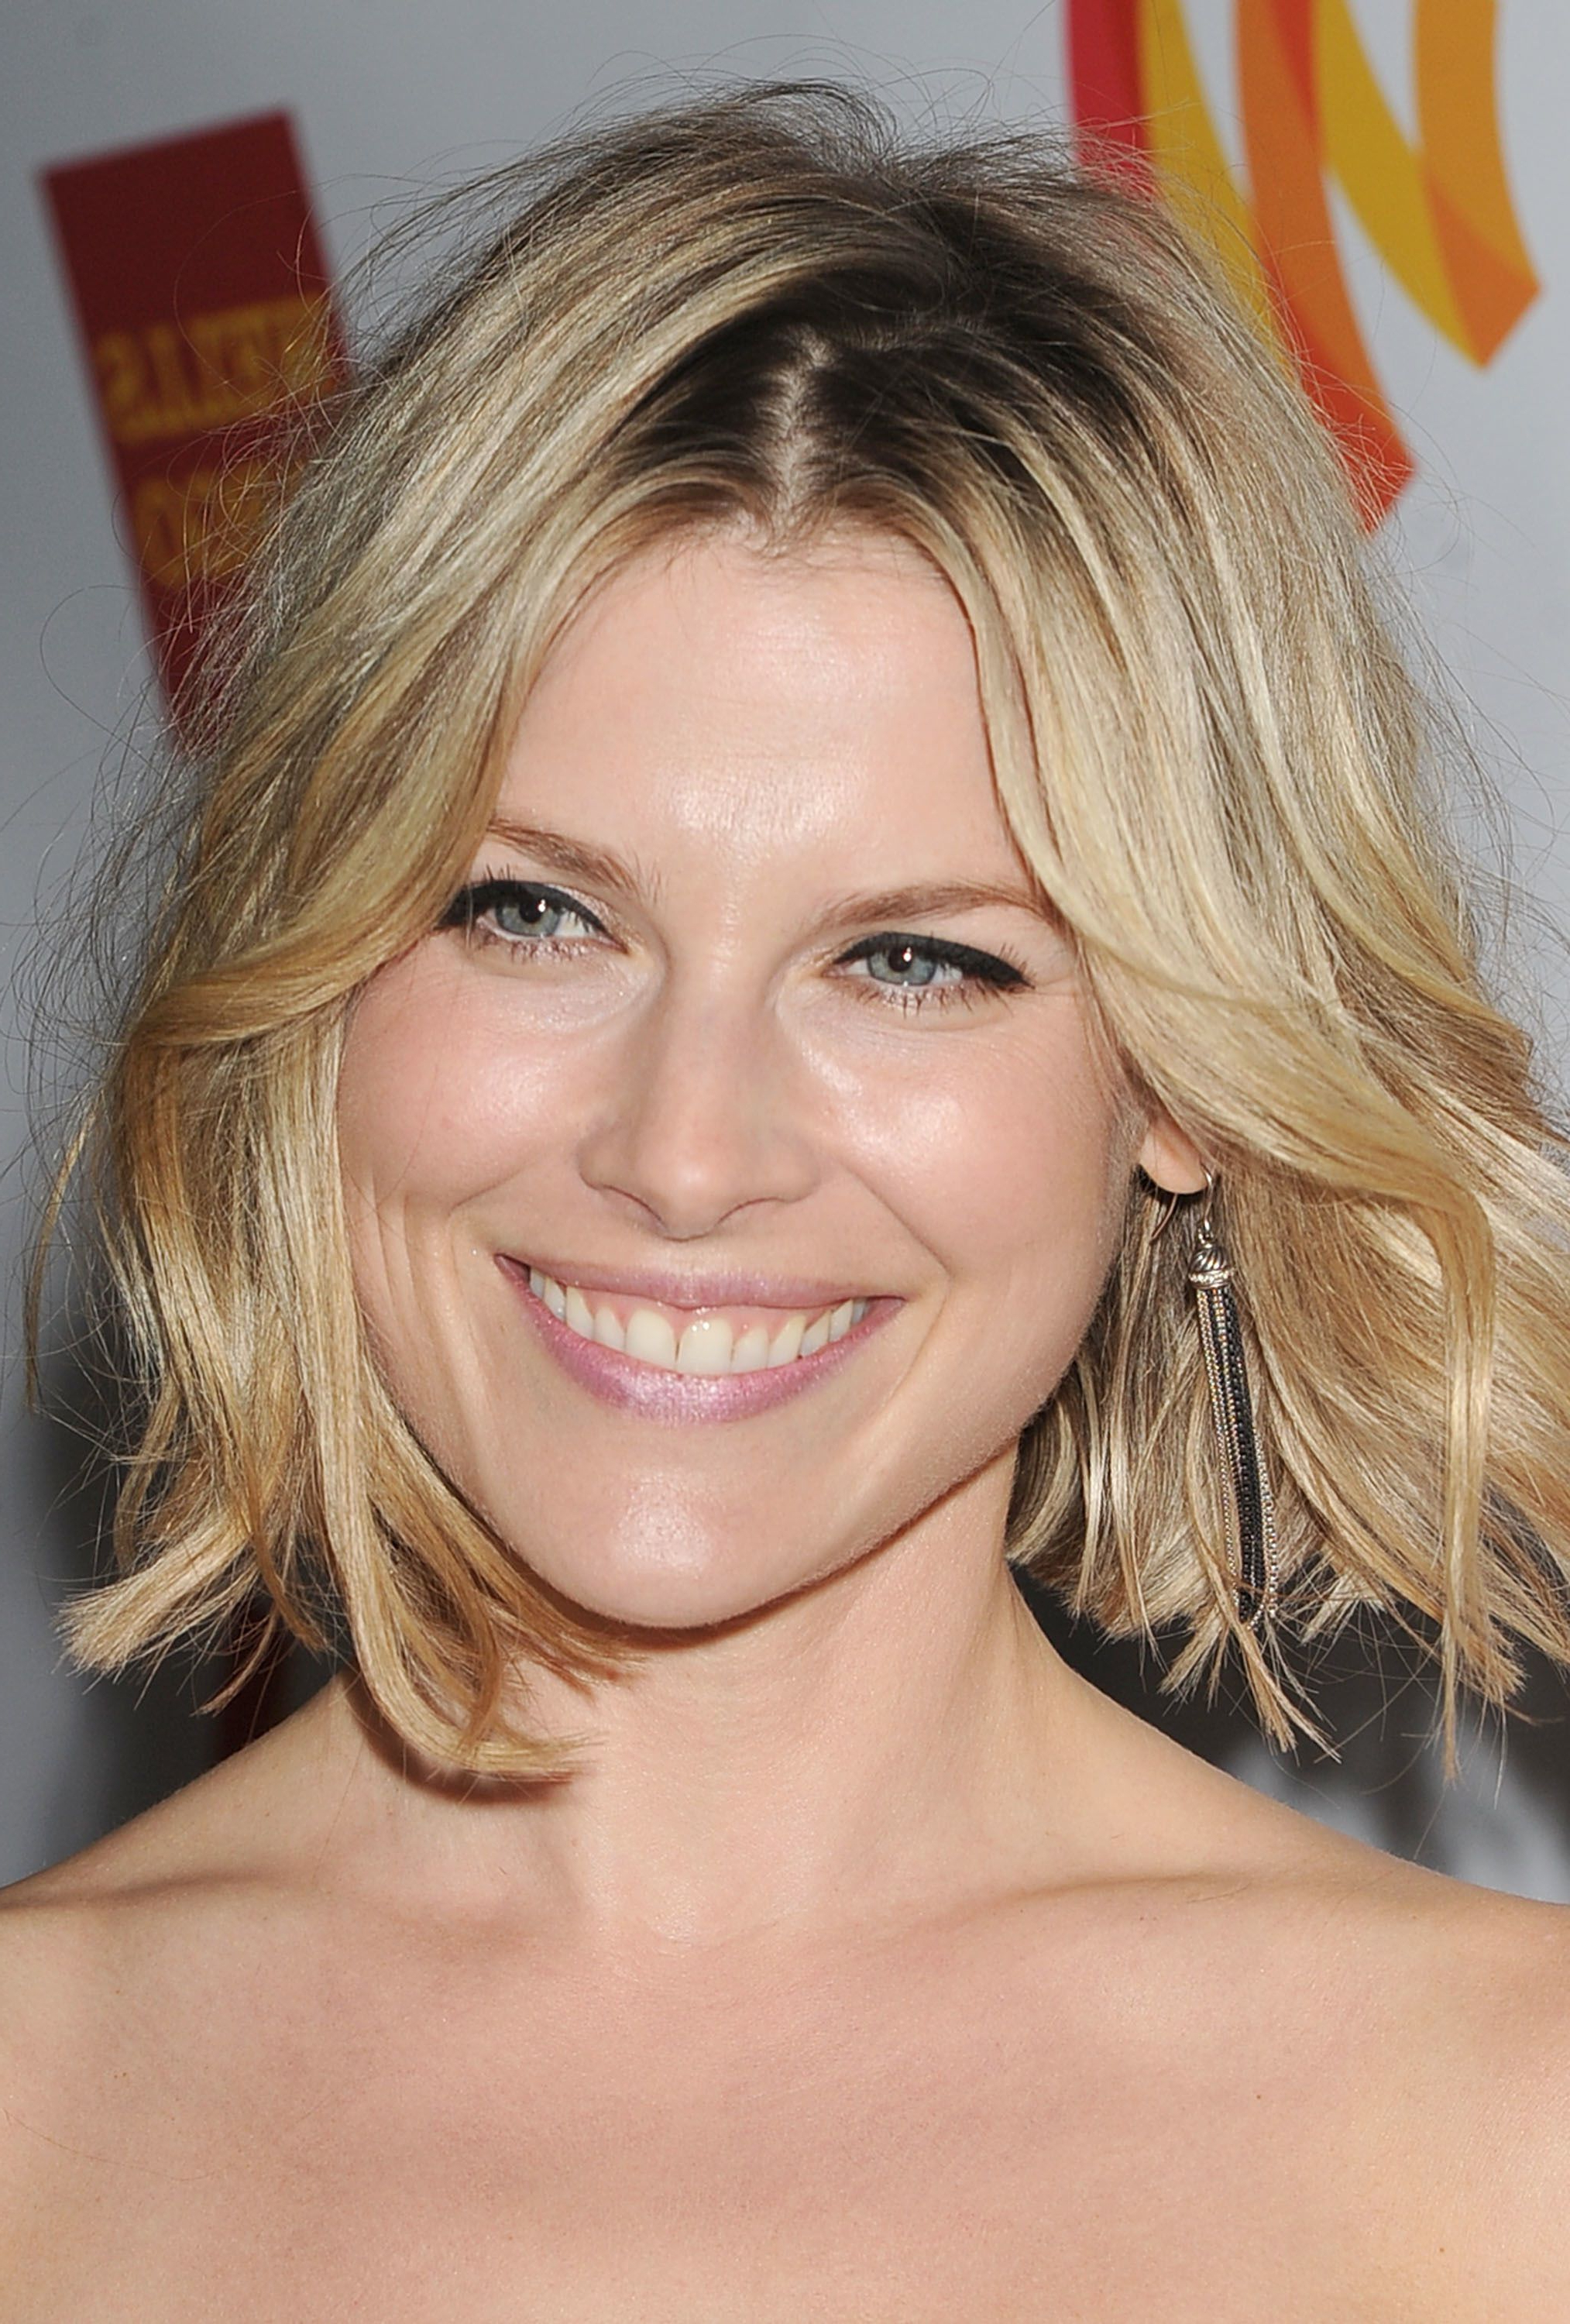 22 Inspiring Short Haircuts For Every Face Shape Pertaining To Short Haircuts For Big Round Face (View 19 of 25)